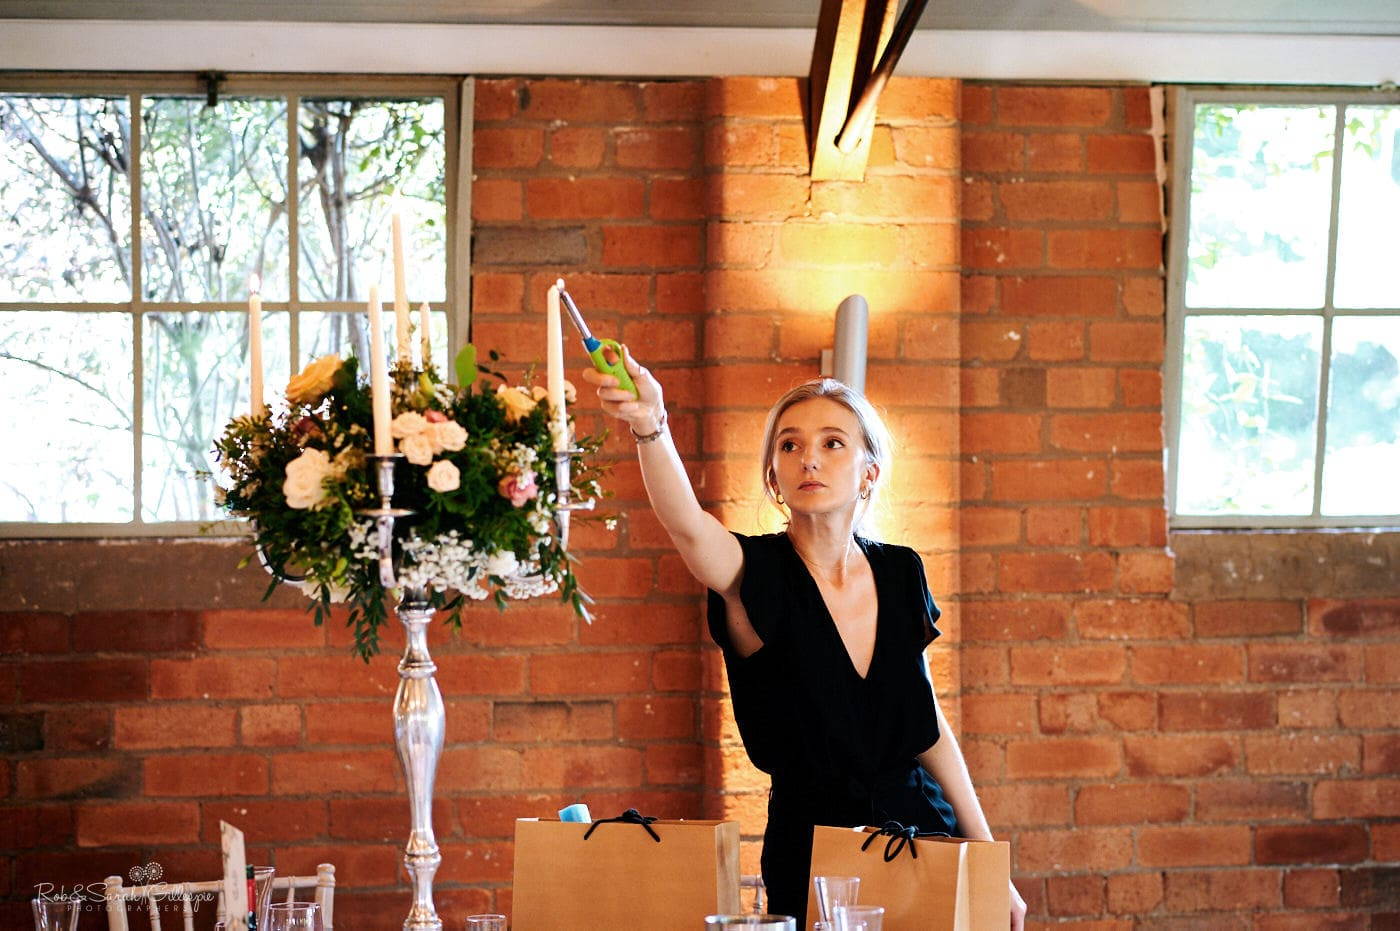 Member of staff lights candles for wedding meal